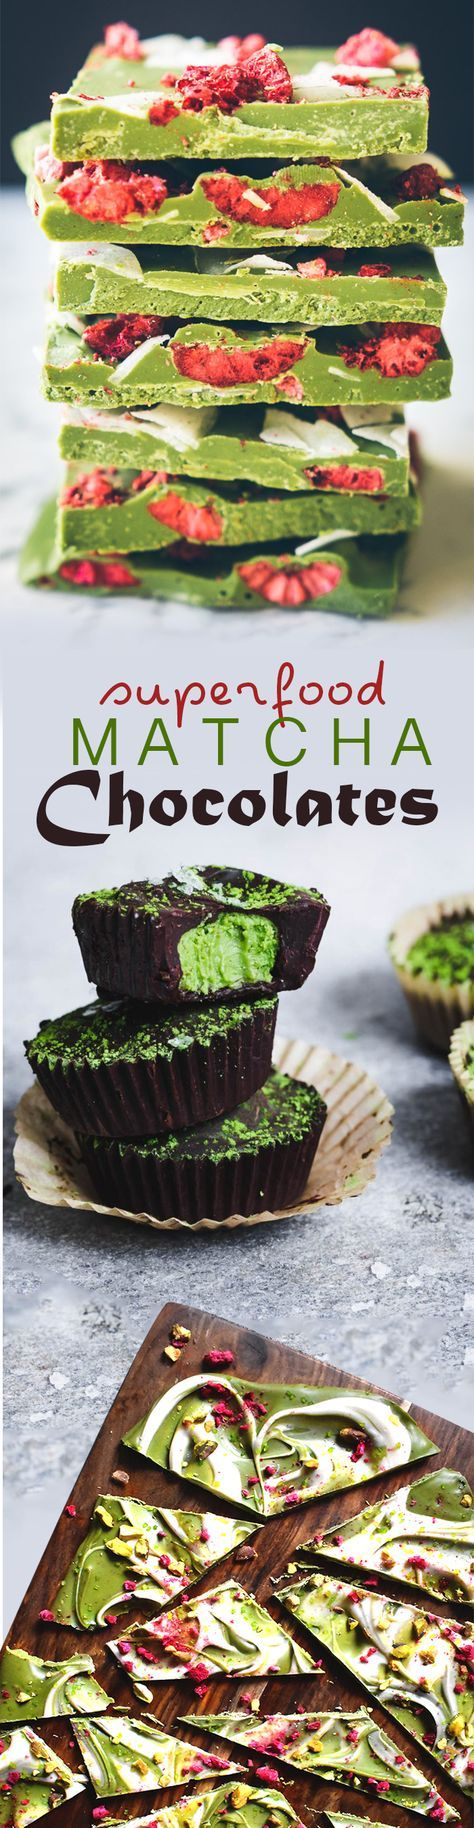 These Matcha chocolates are refreshingly sweet, earthy, nutty, and creamy! Top with your favorite toppings and superfoods for added antioxidants! #love #matcha #macha #抹茶 #お茶 #matchatea #matchalatte #matchalover #matchalovers #matchagreentea #matchaholic